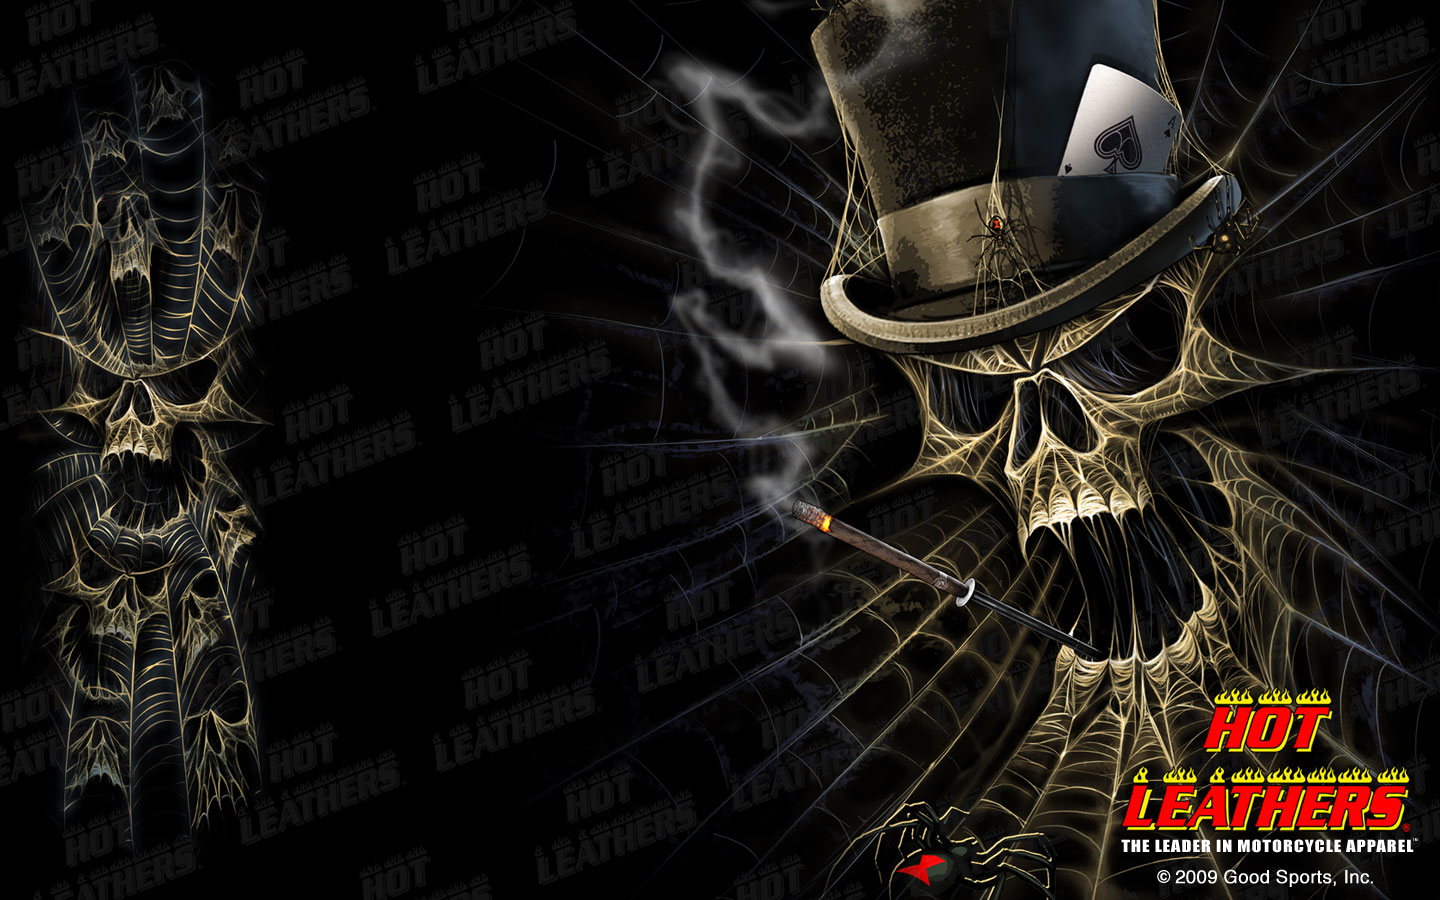 Biker Wallpapers and Motorcycle Desktops Skull Wallpapers and 2nd 1440x900